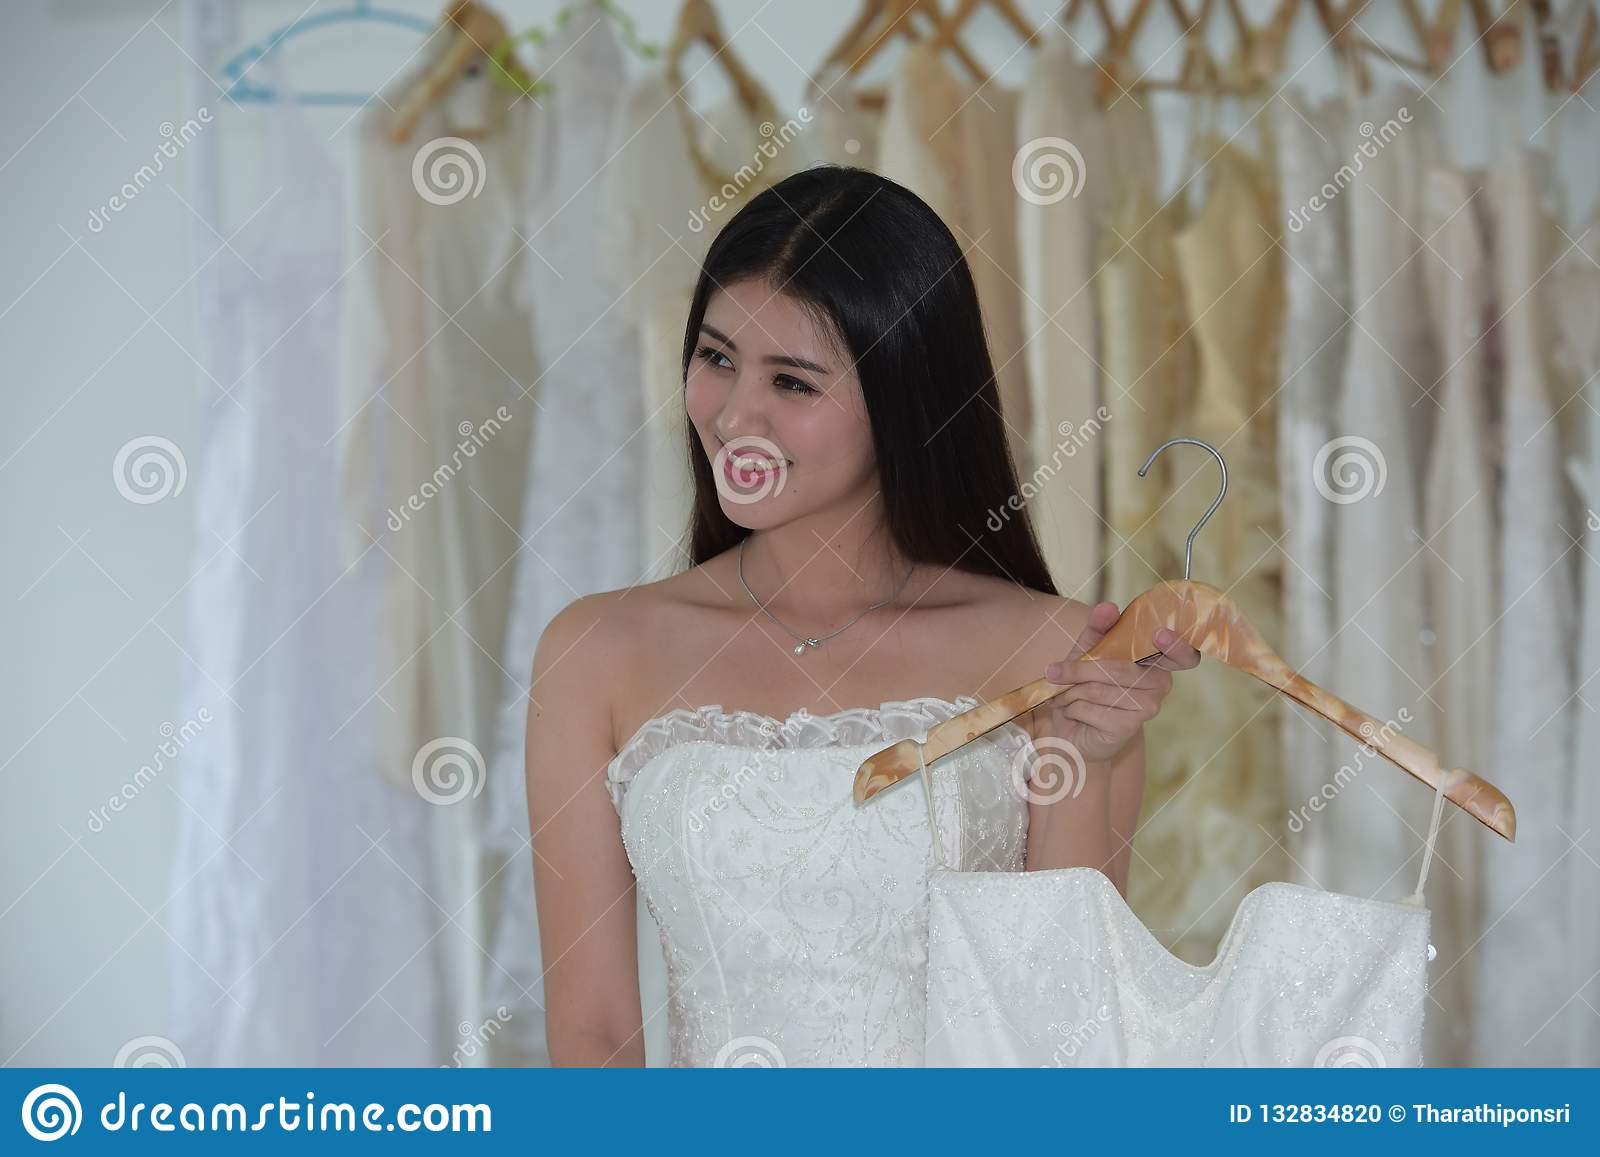 The Bride Came To Measure The Preparation Of The Bride Dress Stock Photo Image Of Clothing Ceremony 132834820,Beach Flowy Sleeveless Beach Flowy Wedding Dresses